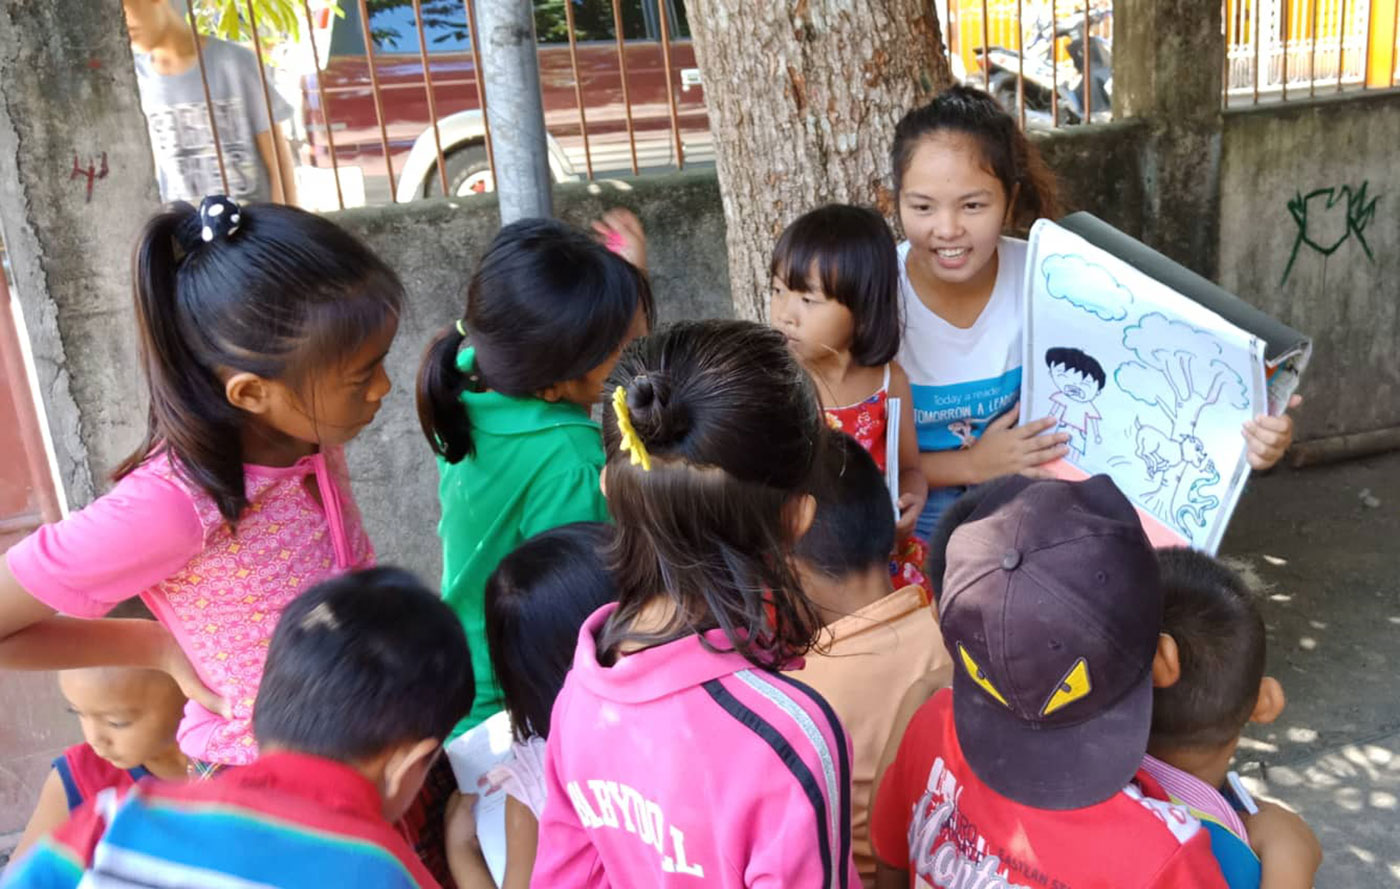 LITERACY ADVOCATE. A young volunteer teacher from San Jose Elementary School in Donsol town, Sorsogon, teaches children to read a book on the street. Photo by Rhaydz B. Barcia/Rappler